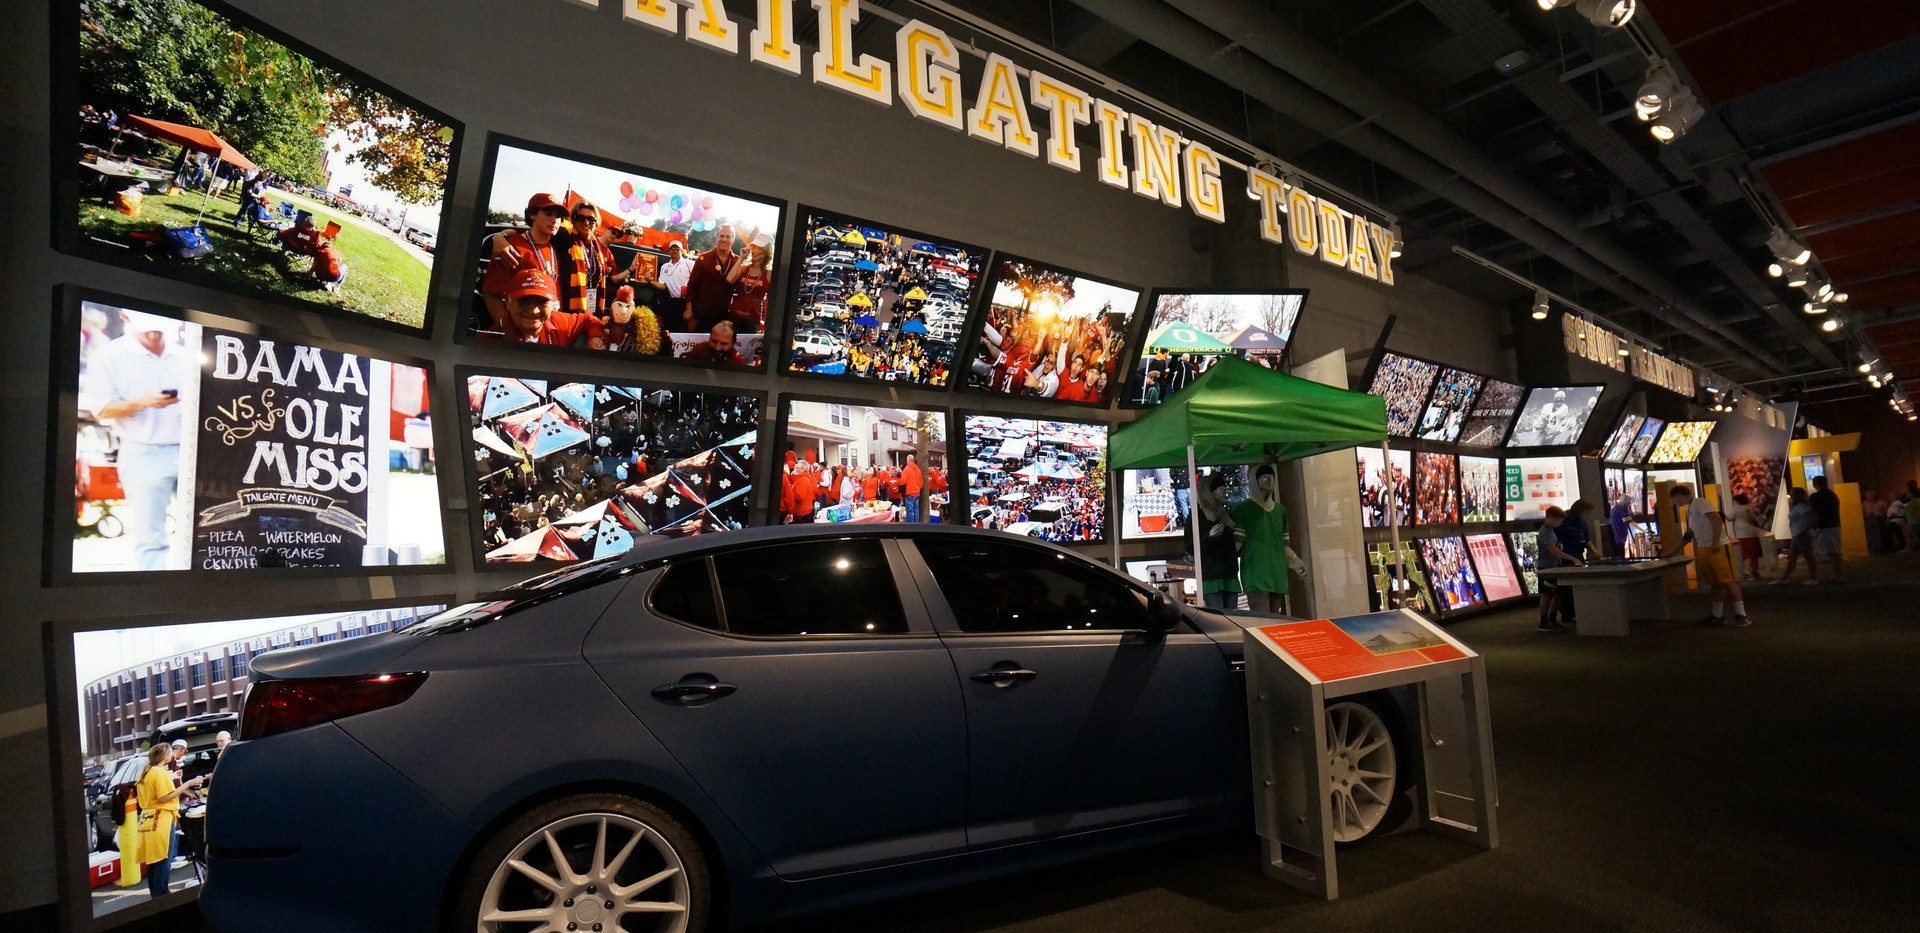 College Football Hall of Fame Tailgating Today